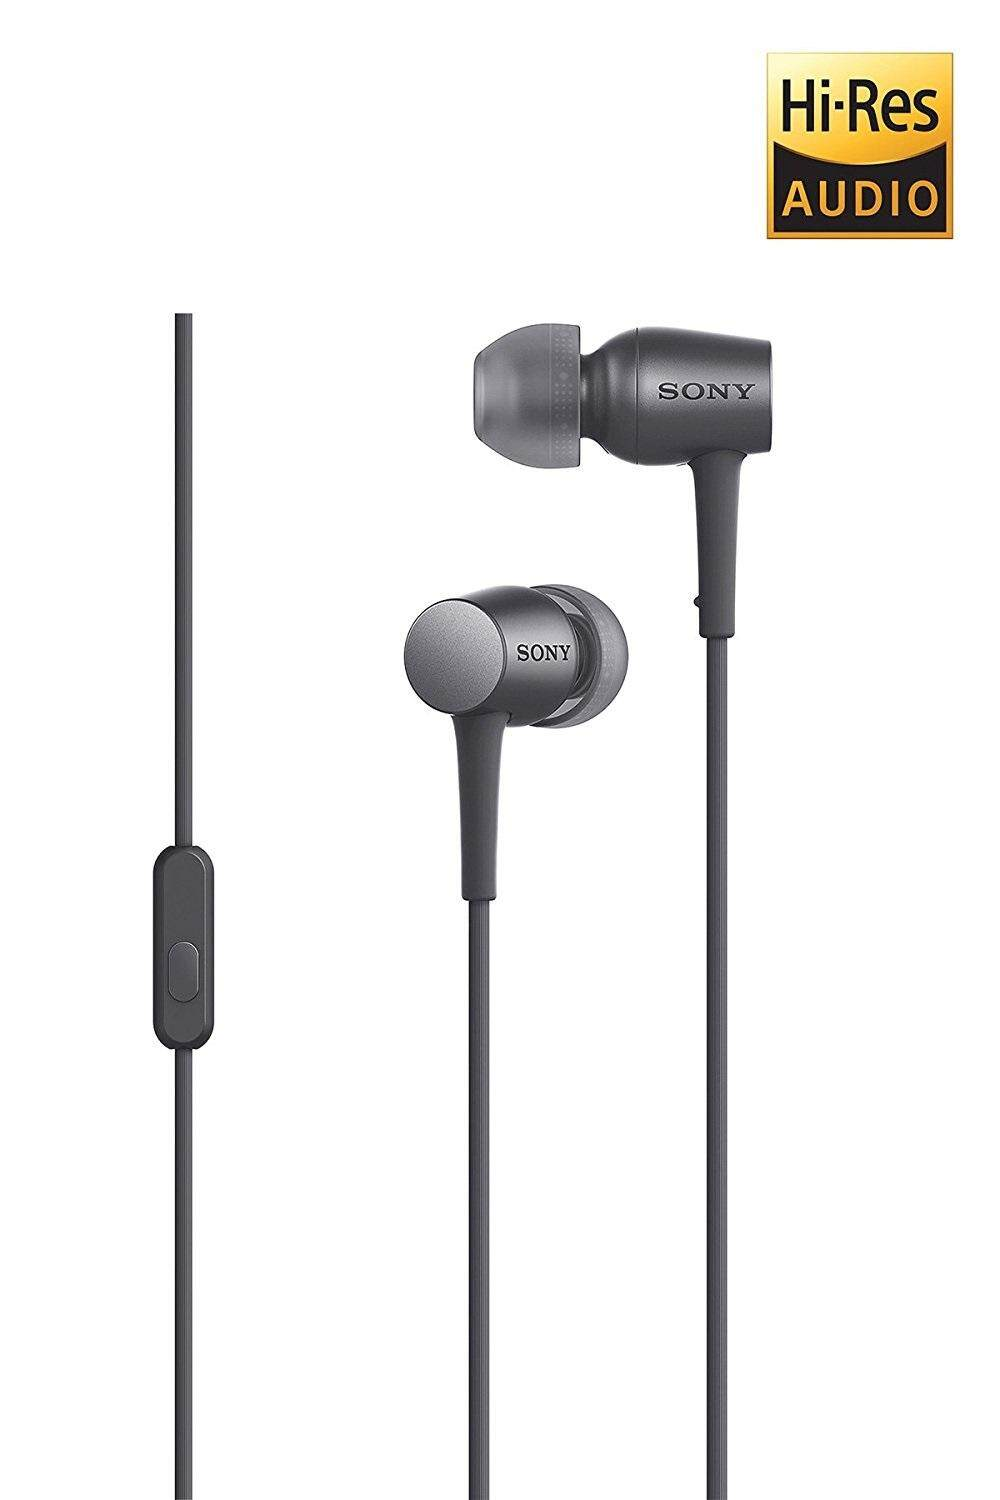 Sony Headphones Headsets In Ear Price Malaysia Headset Mh750 Mdr Ex750ap Hi Res Audio With Mic